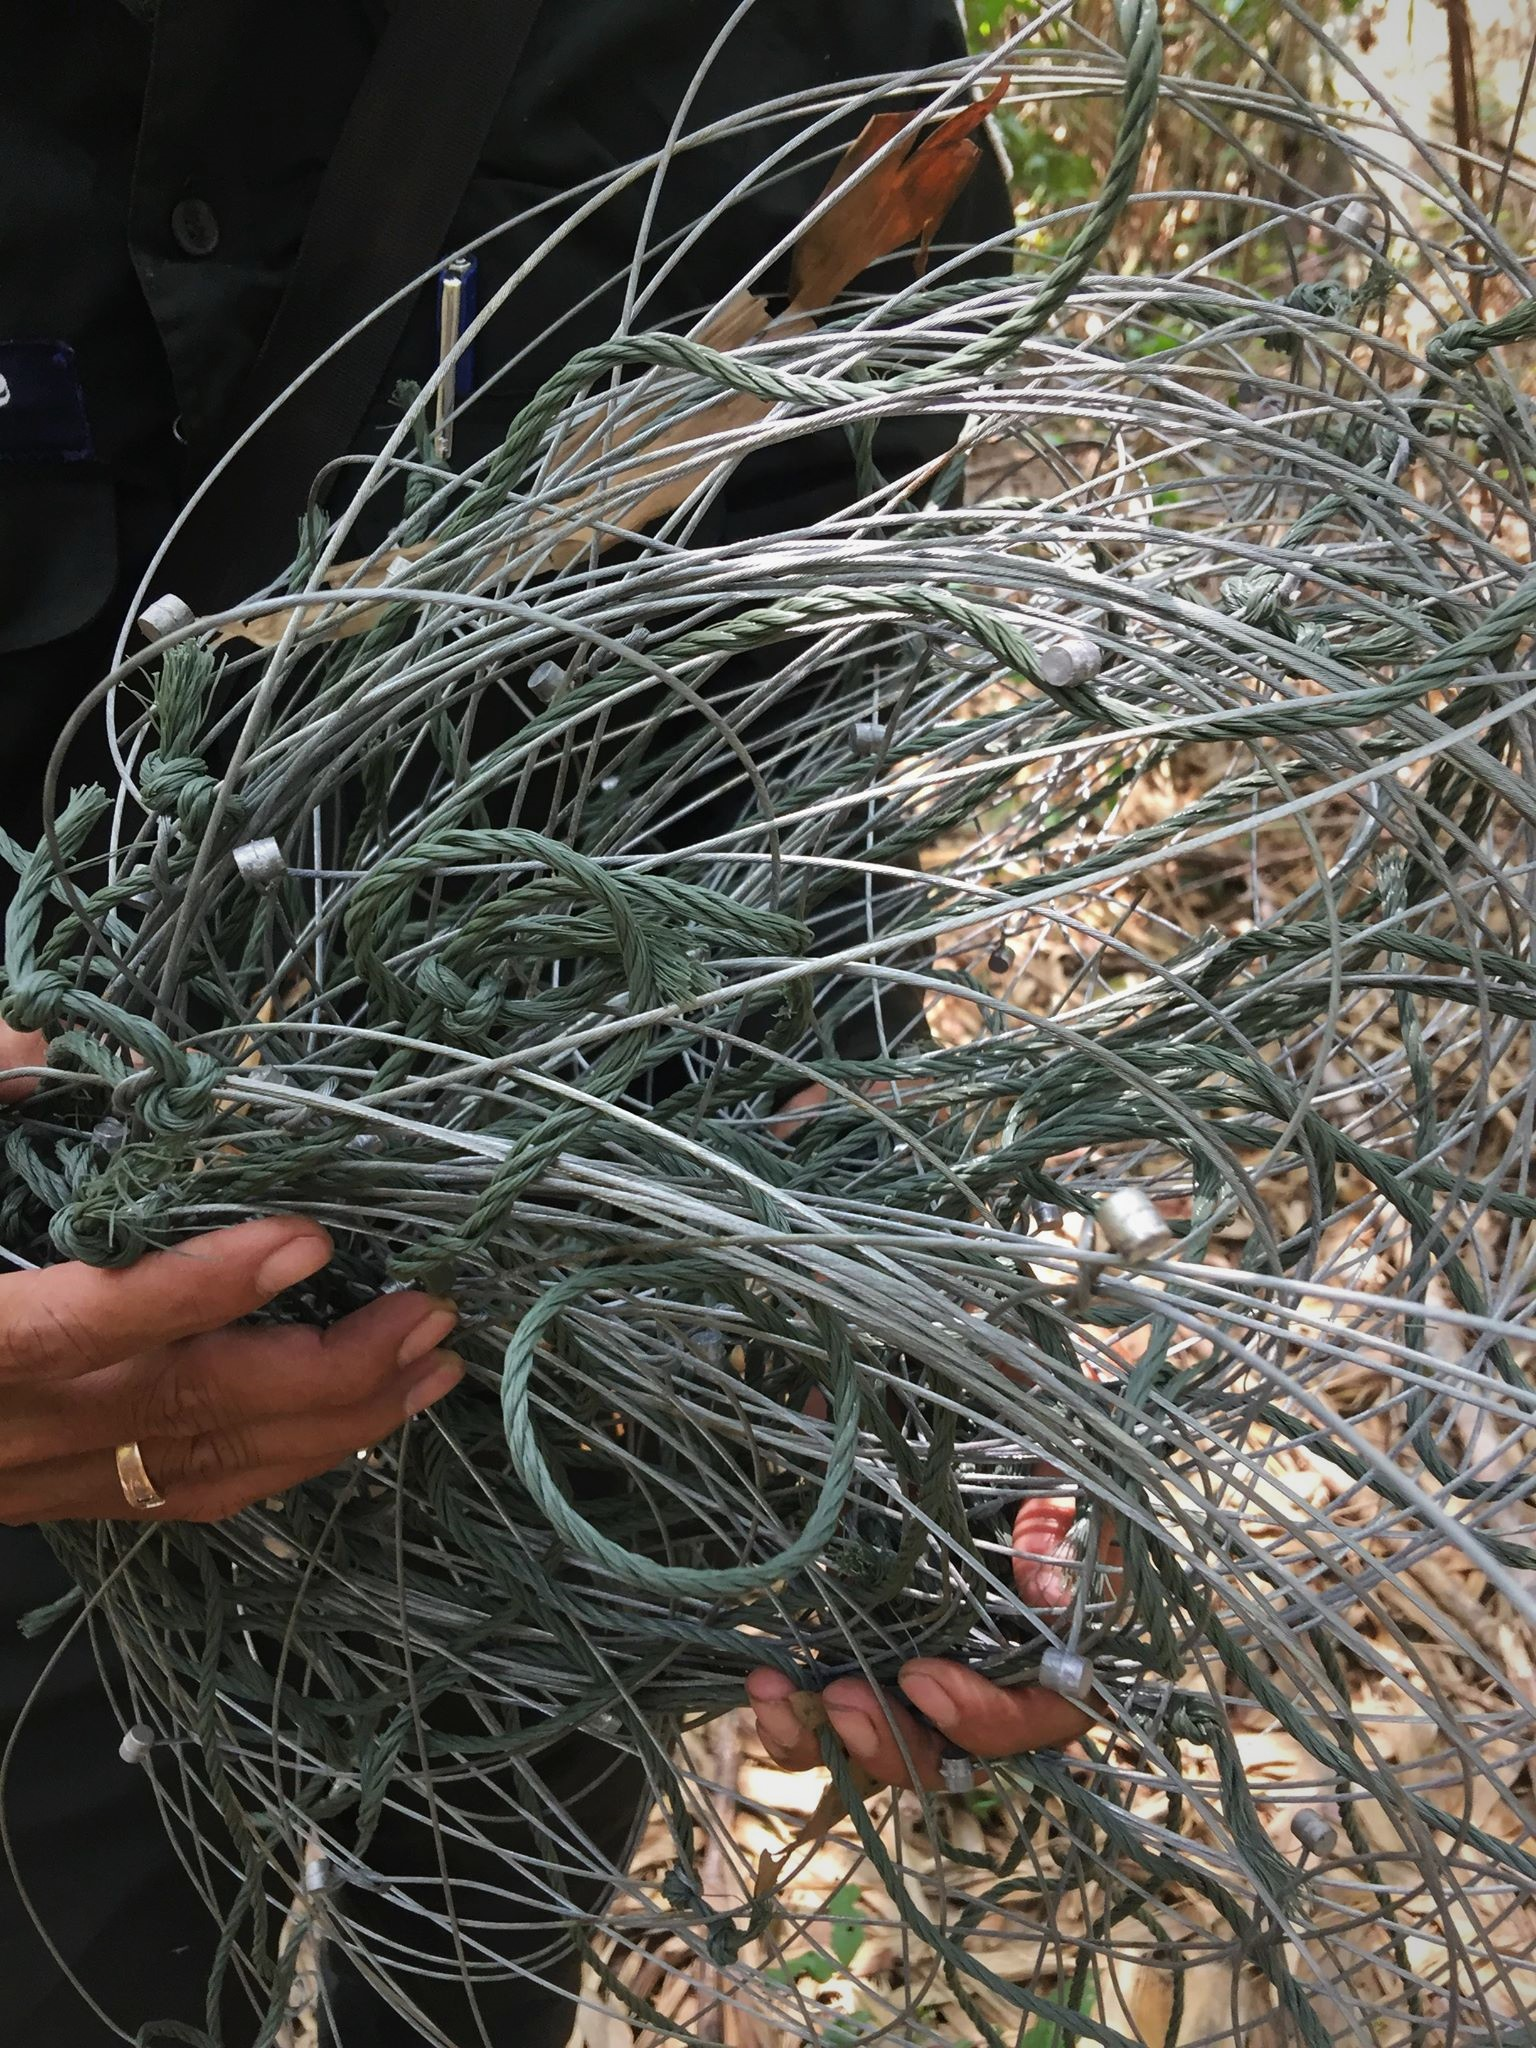 ban snares Call for ban of snares – Dhole caught in snares graphic content animal traps 1